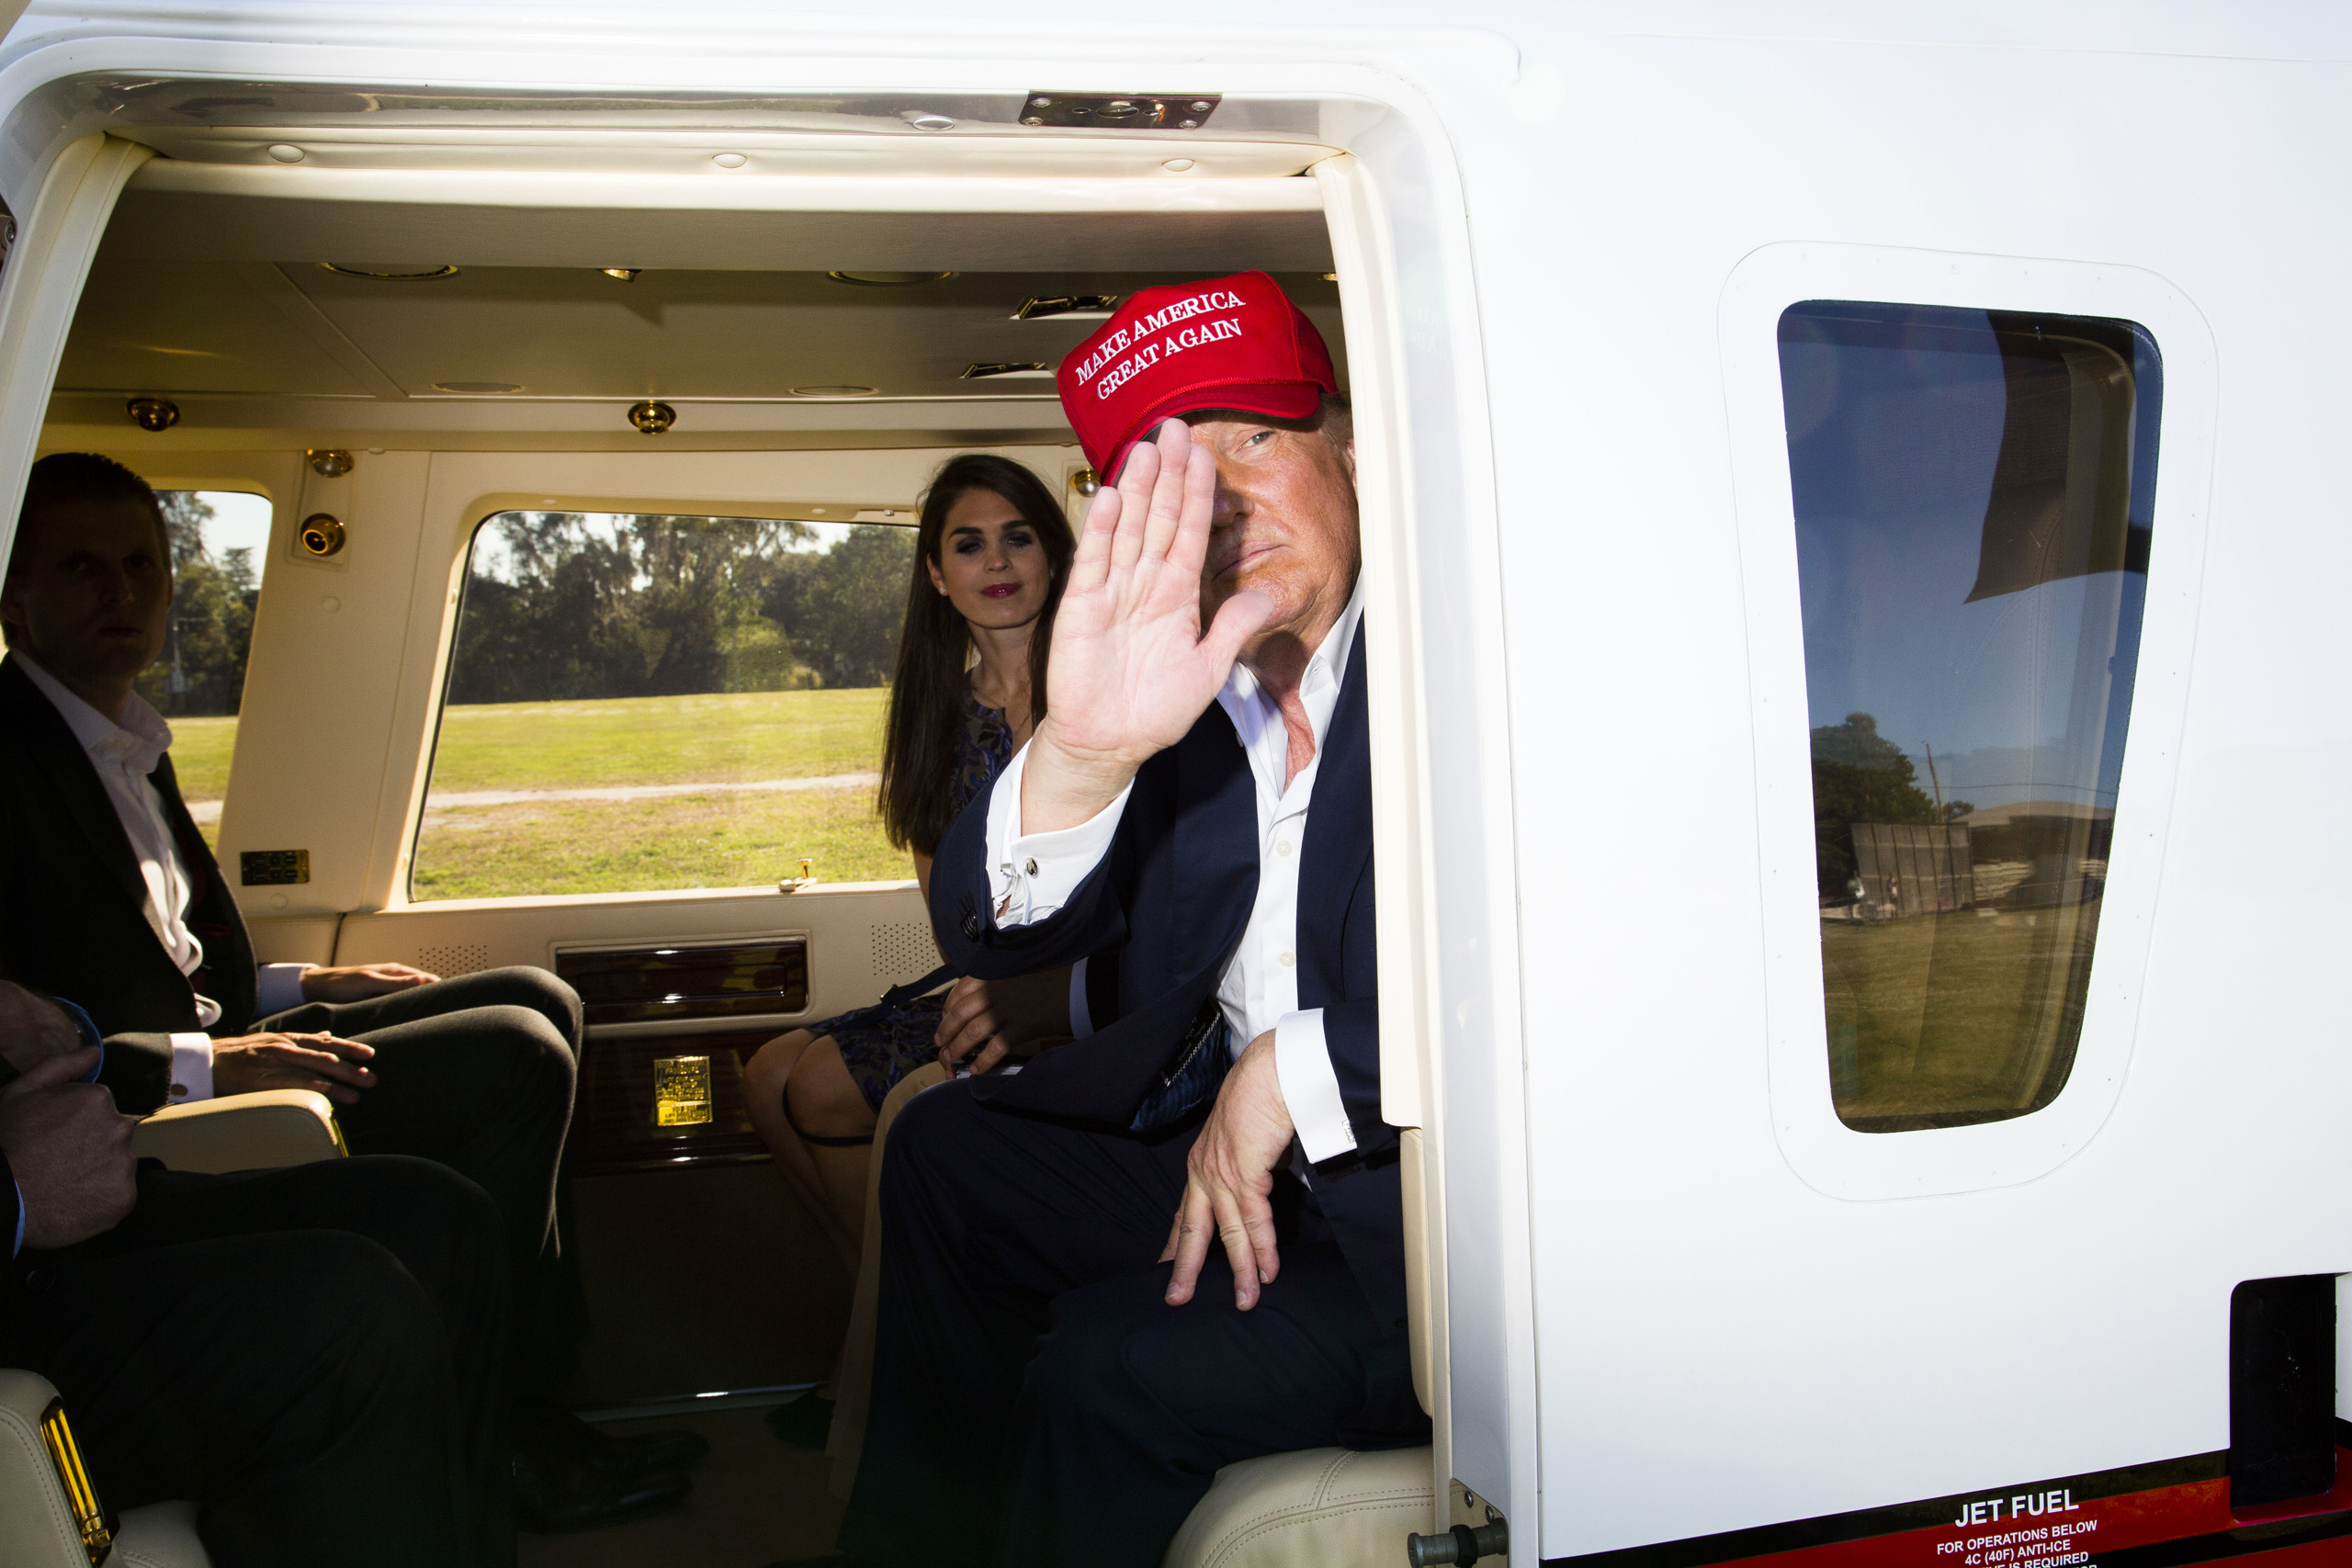 Donald Trump and his campaign staff prepare to depart from the Robarts Arena on Saturday after a campaign rally in Sarasota, Fla. Nov. 28, 2015.